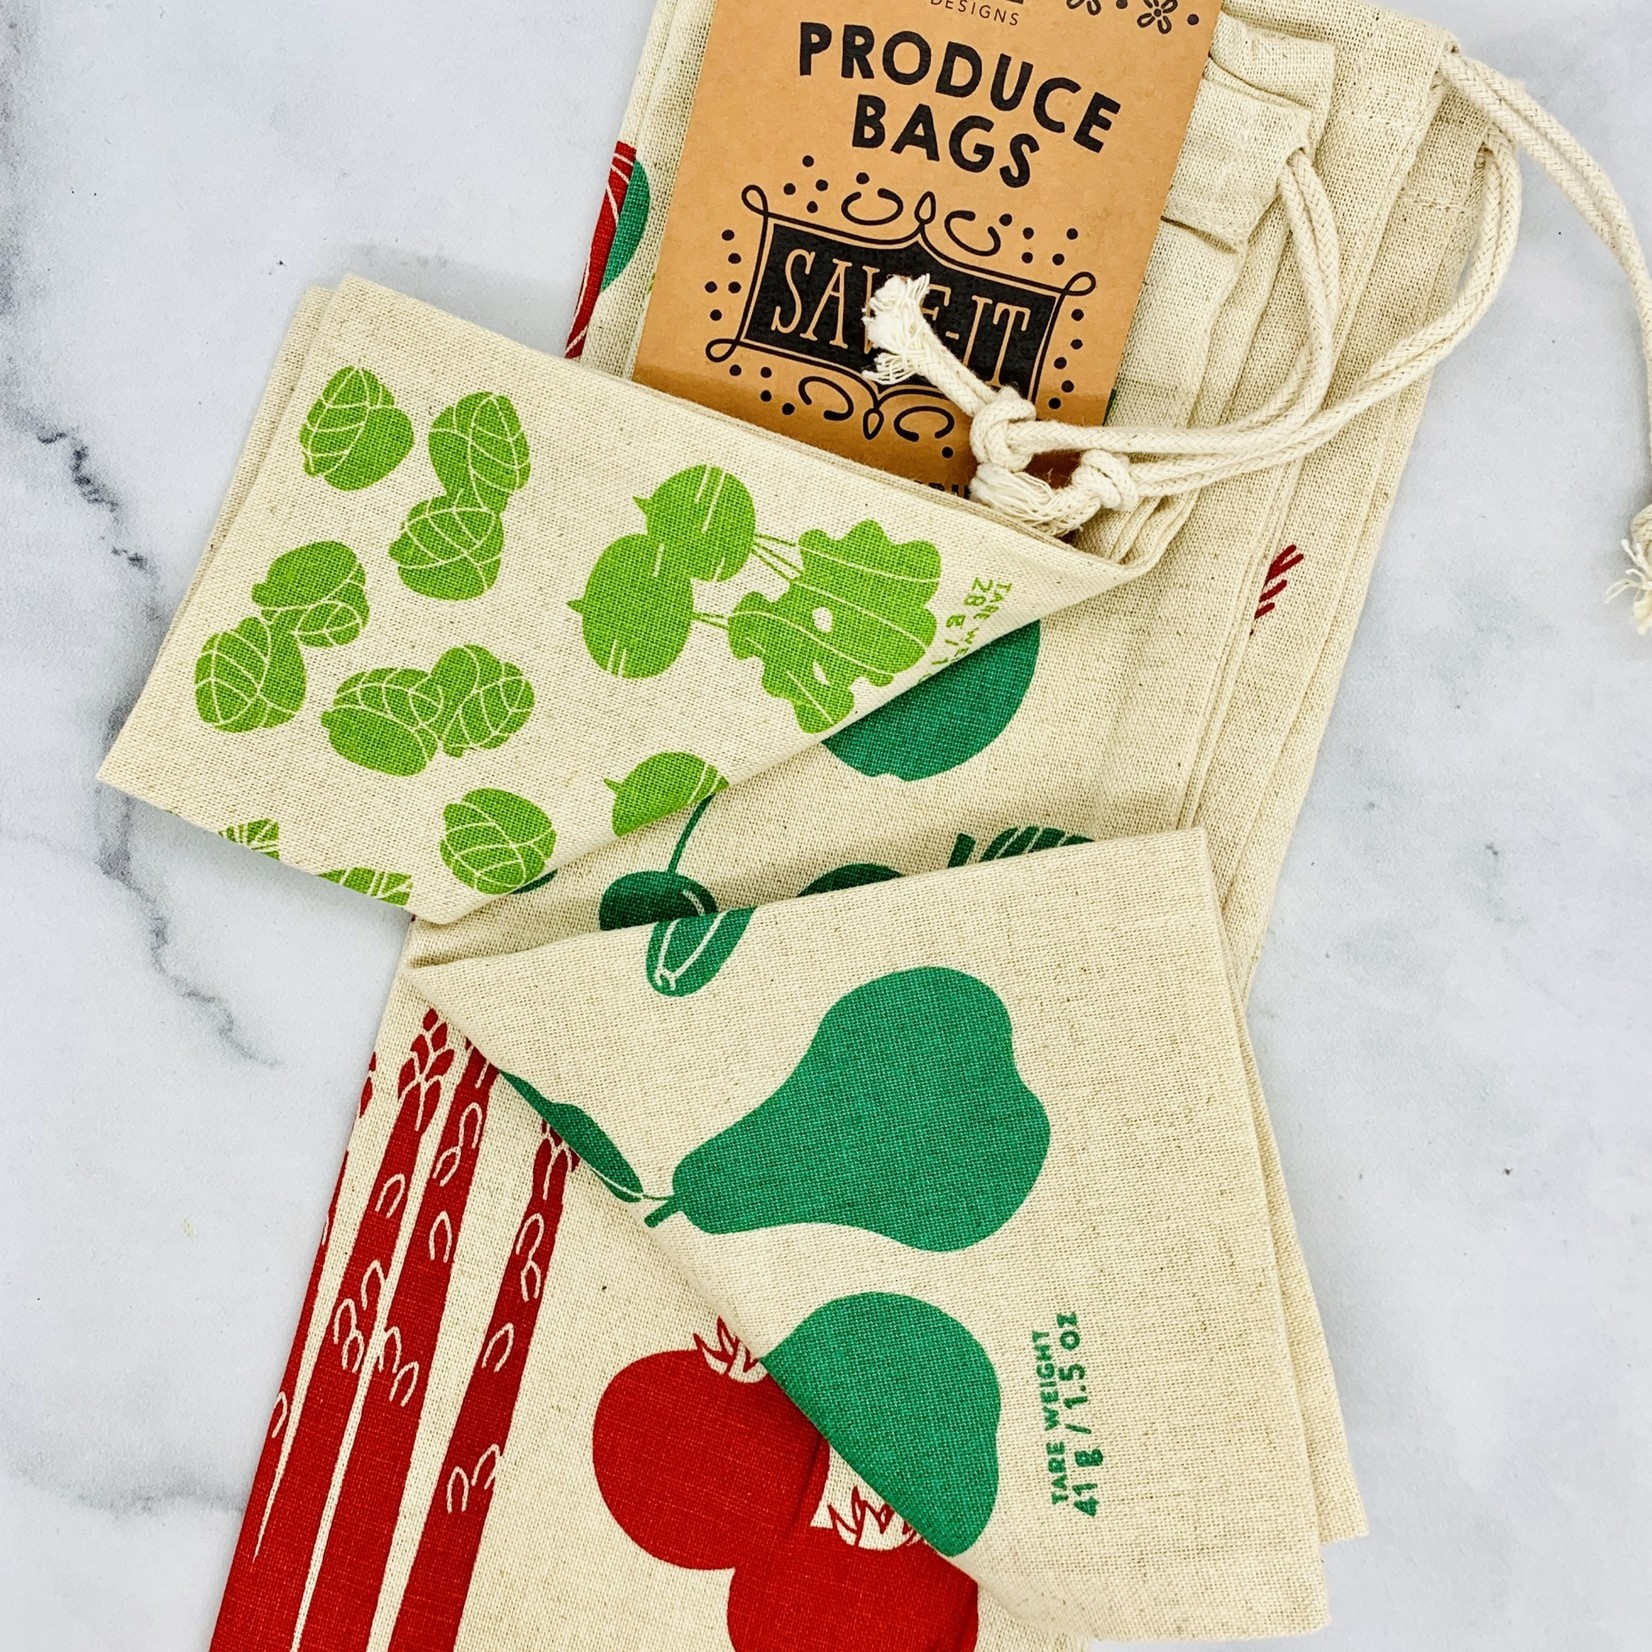 Fruit and Veggies Produce Bags Set of 3